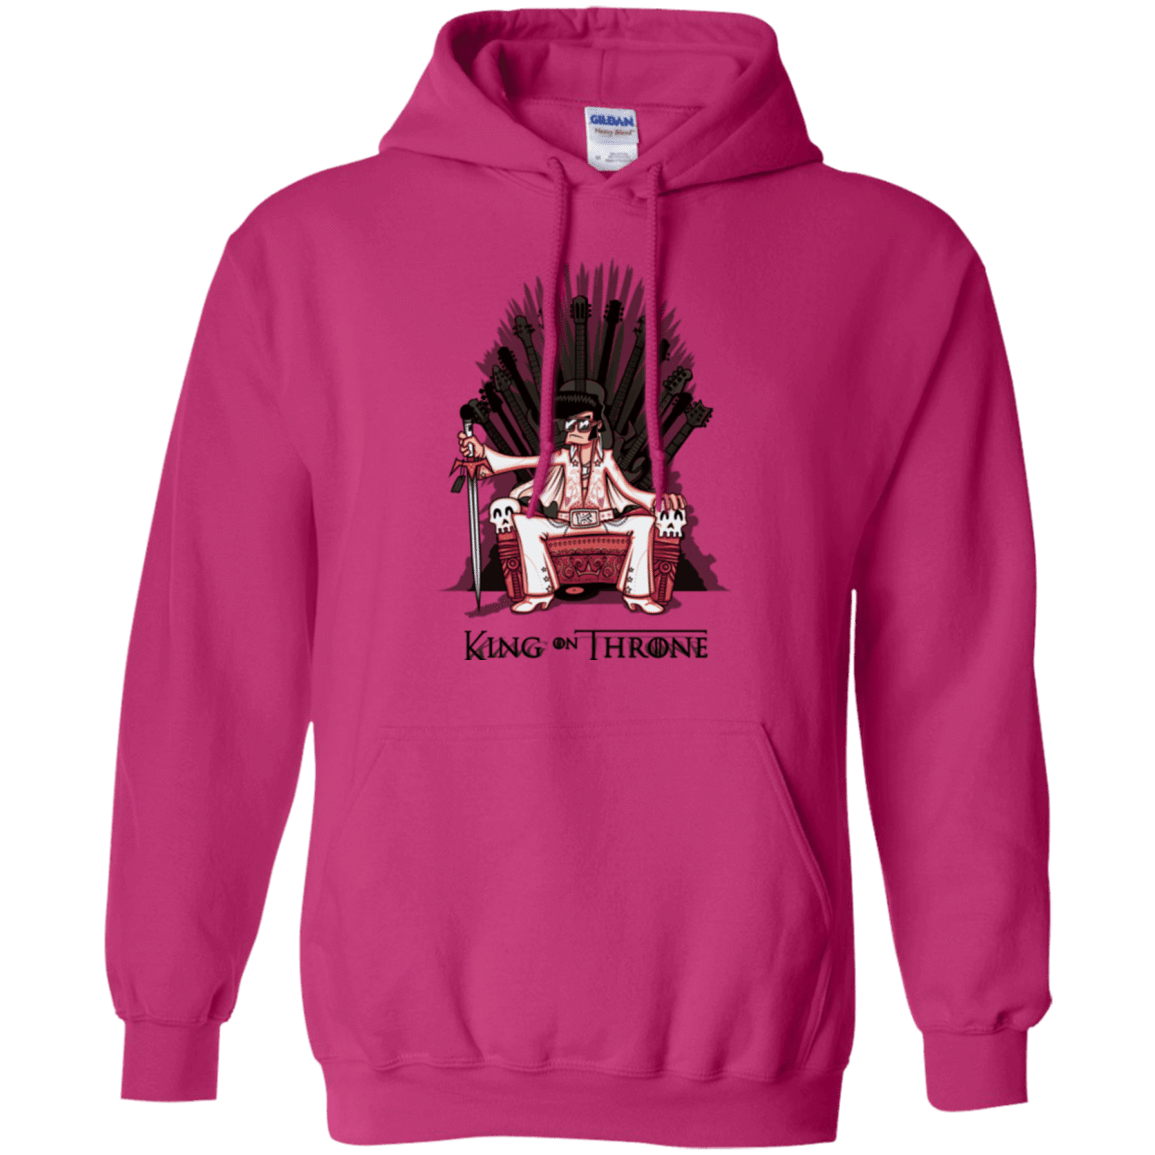 Sweatshirts Heliconia / Small King on Throne Pullover Hoodie